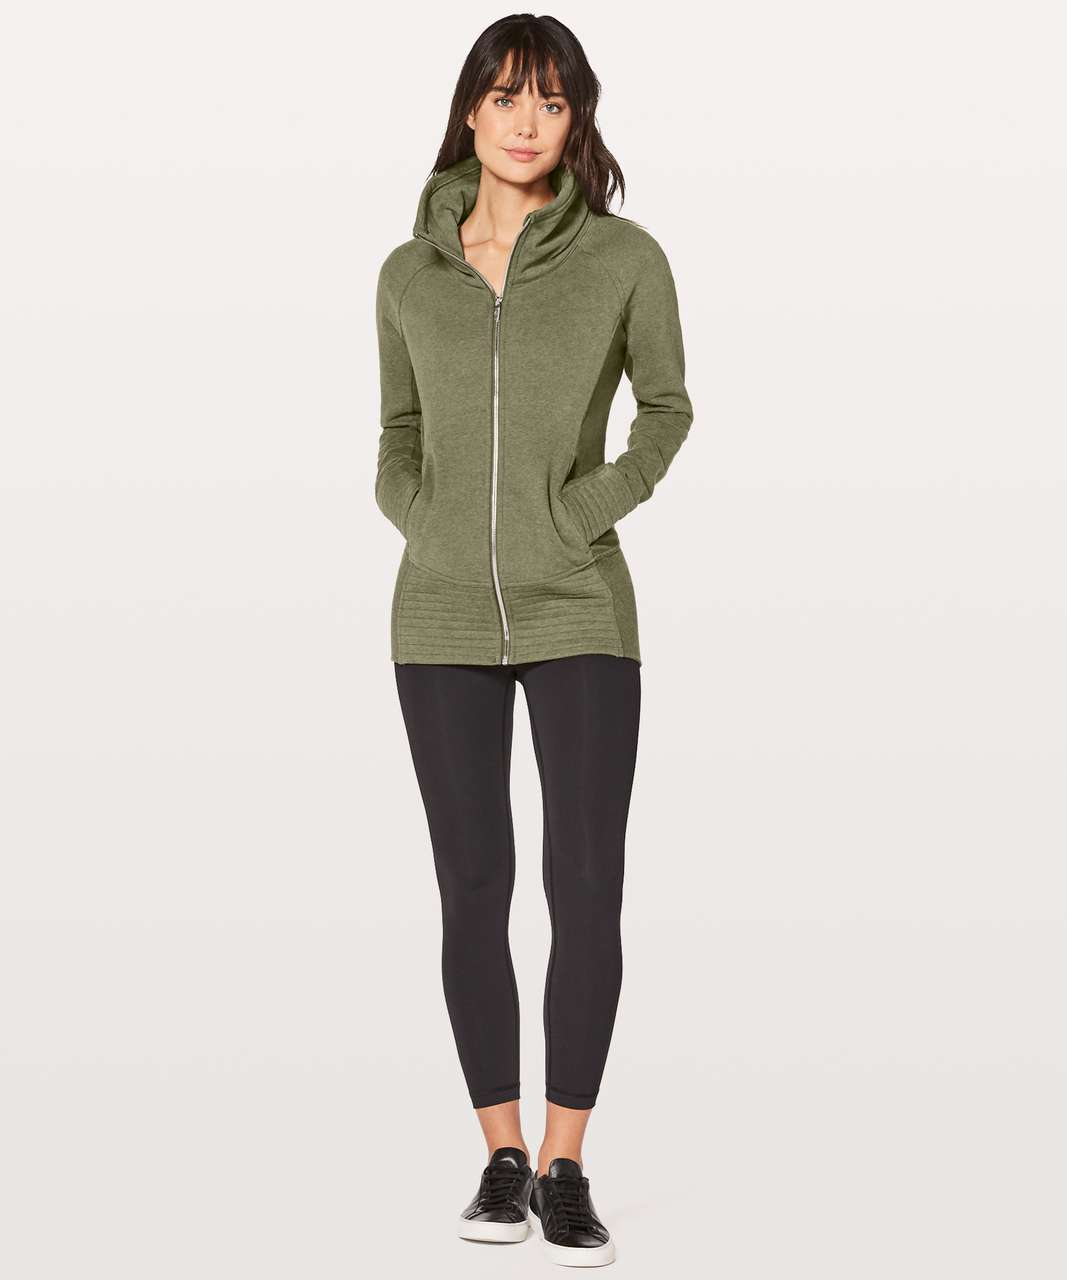 Lululemon Radiant Jacket II - Heathered Fatigue Green